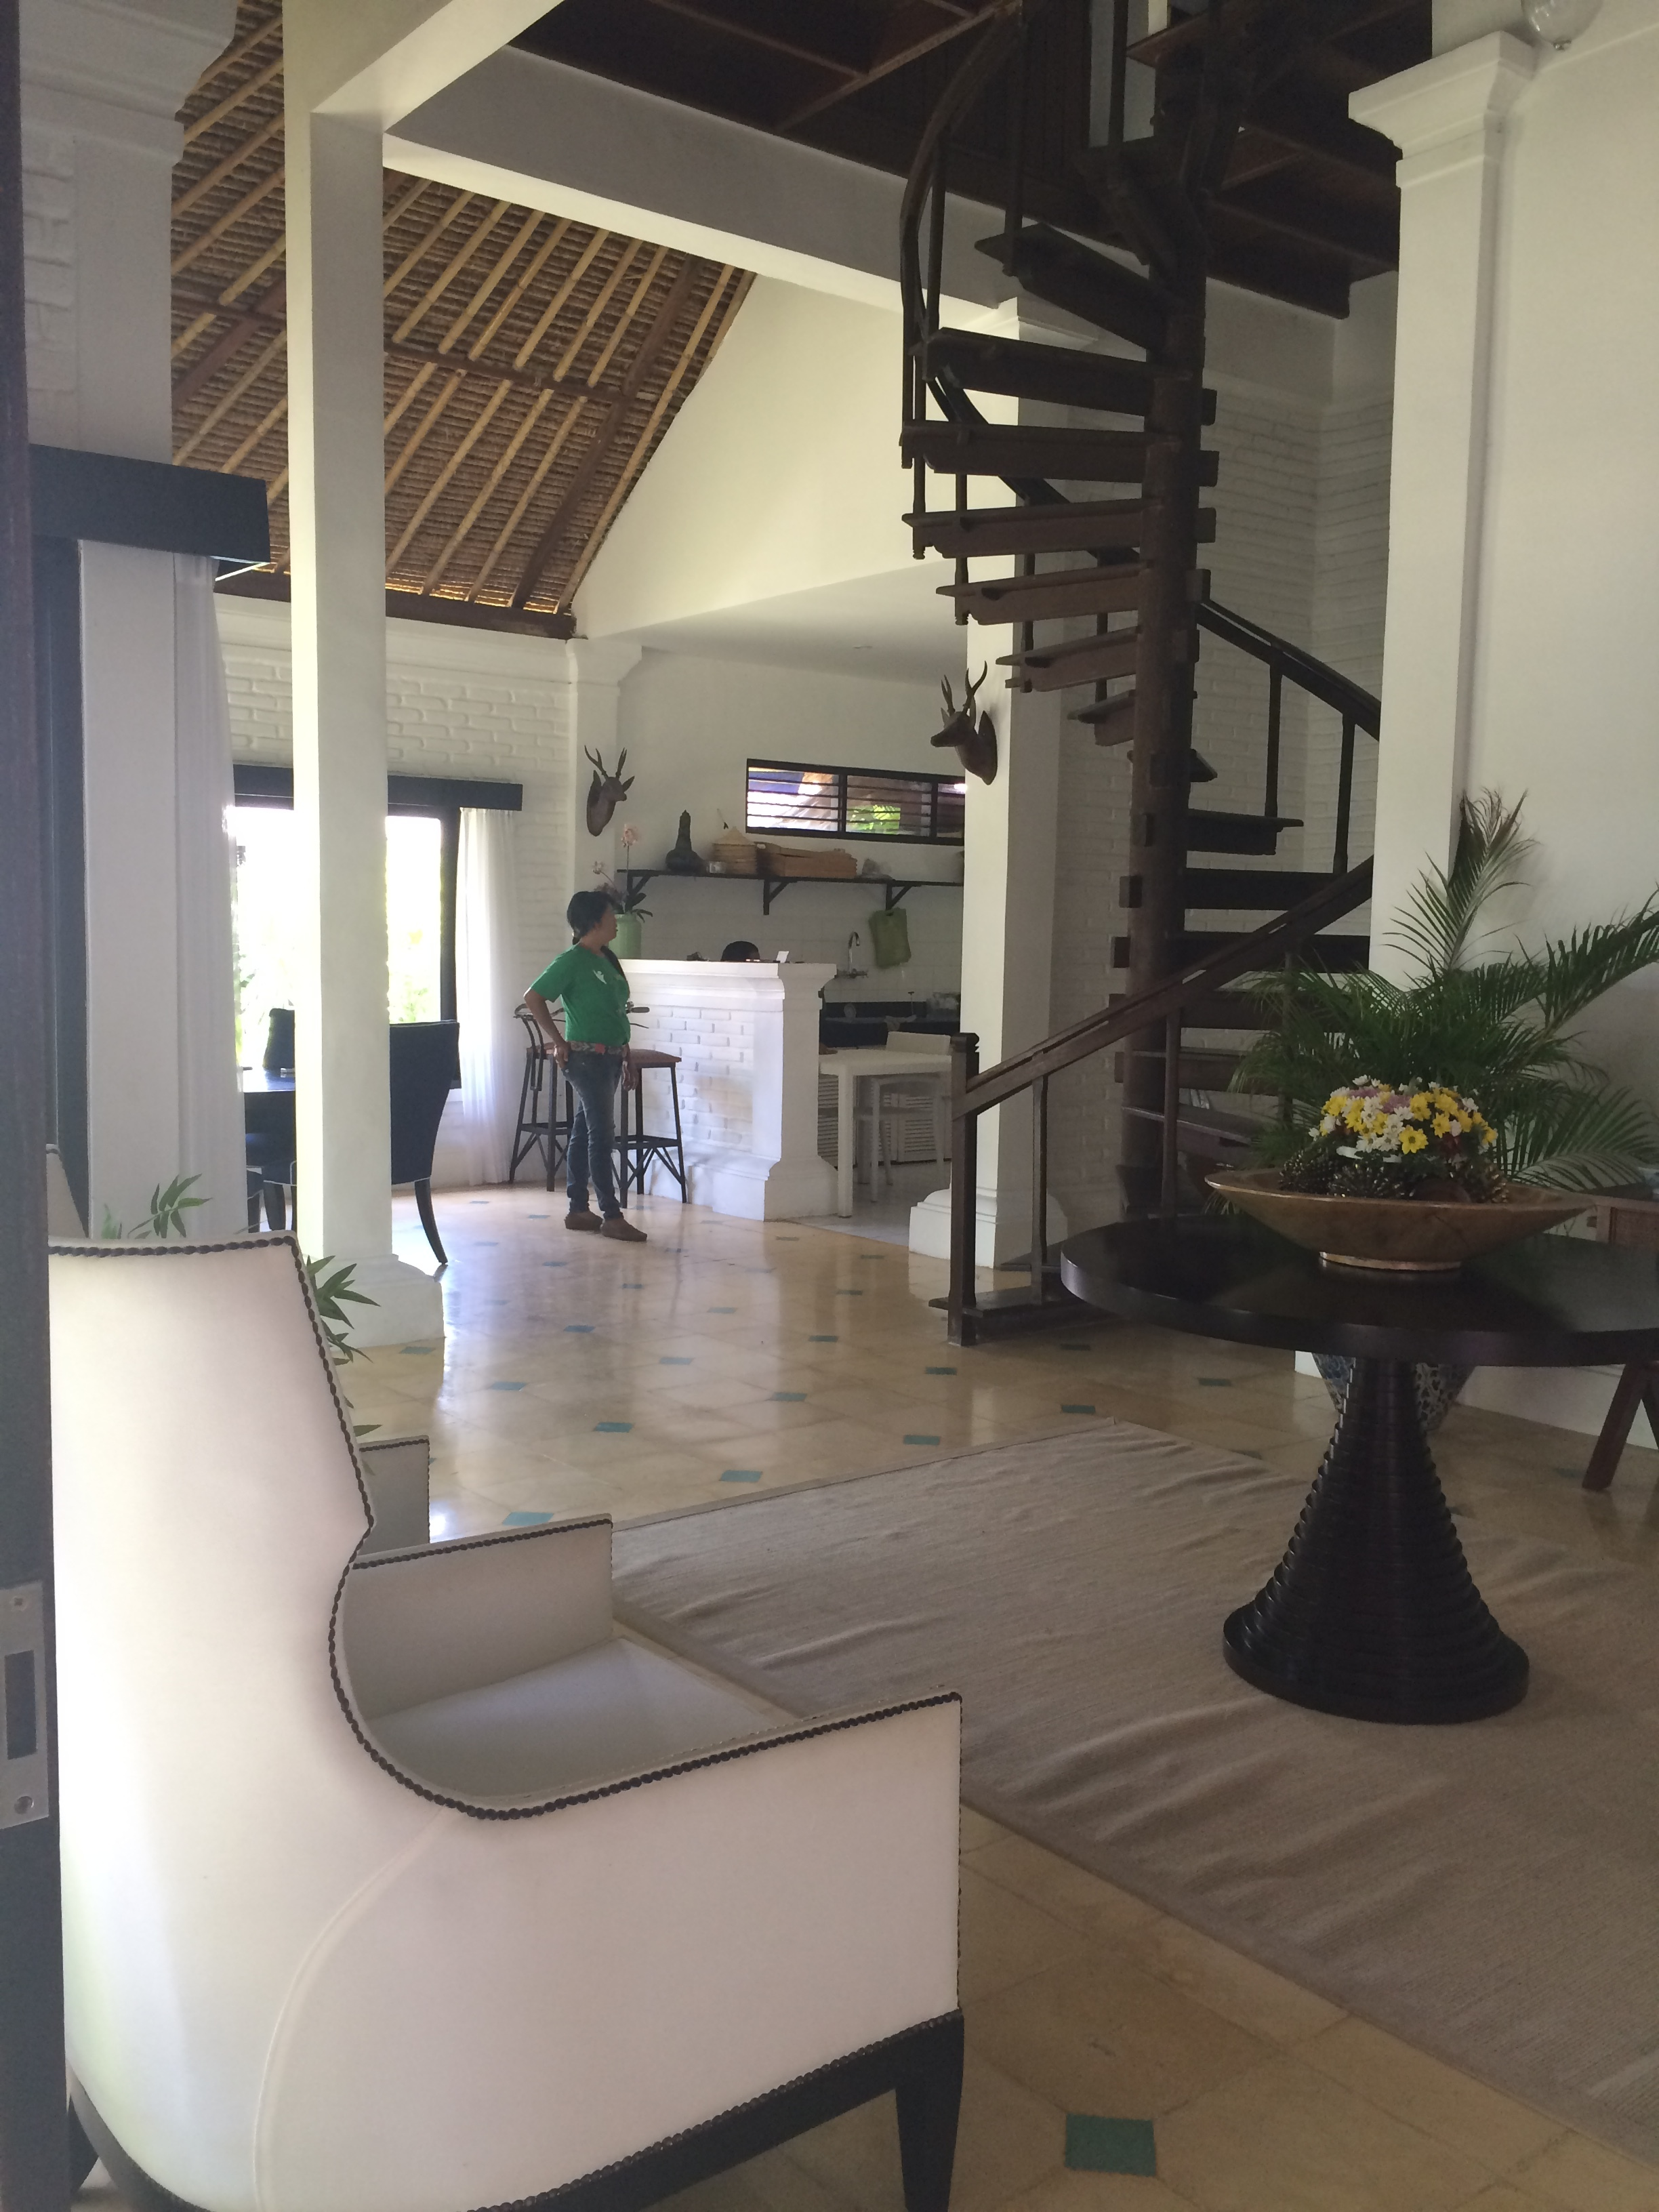 Living room of one of the Indies villas